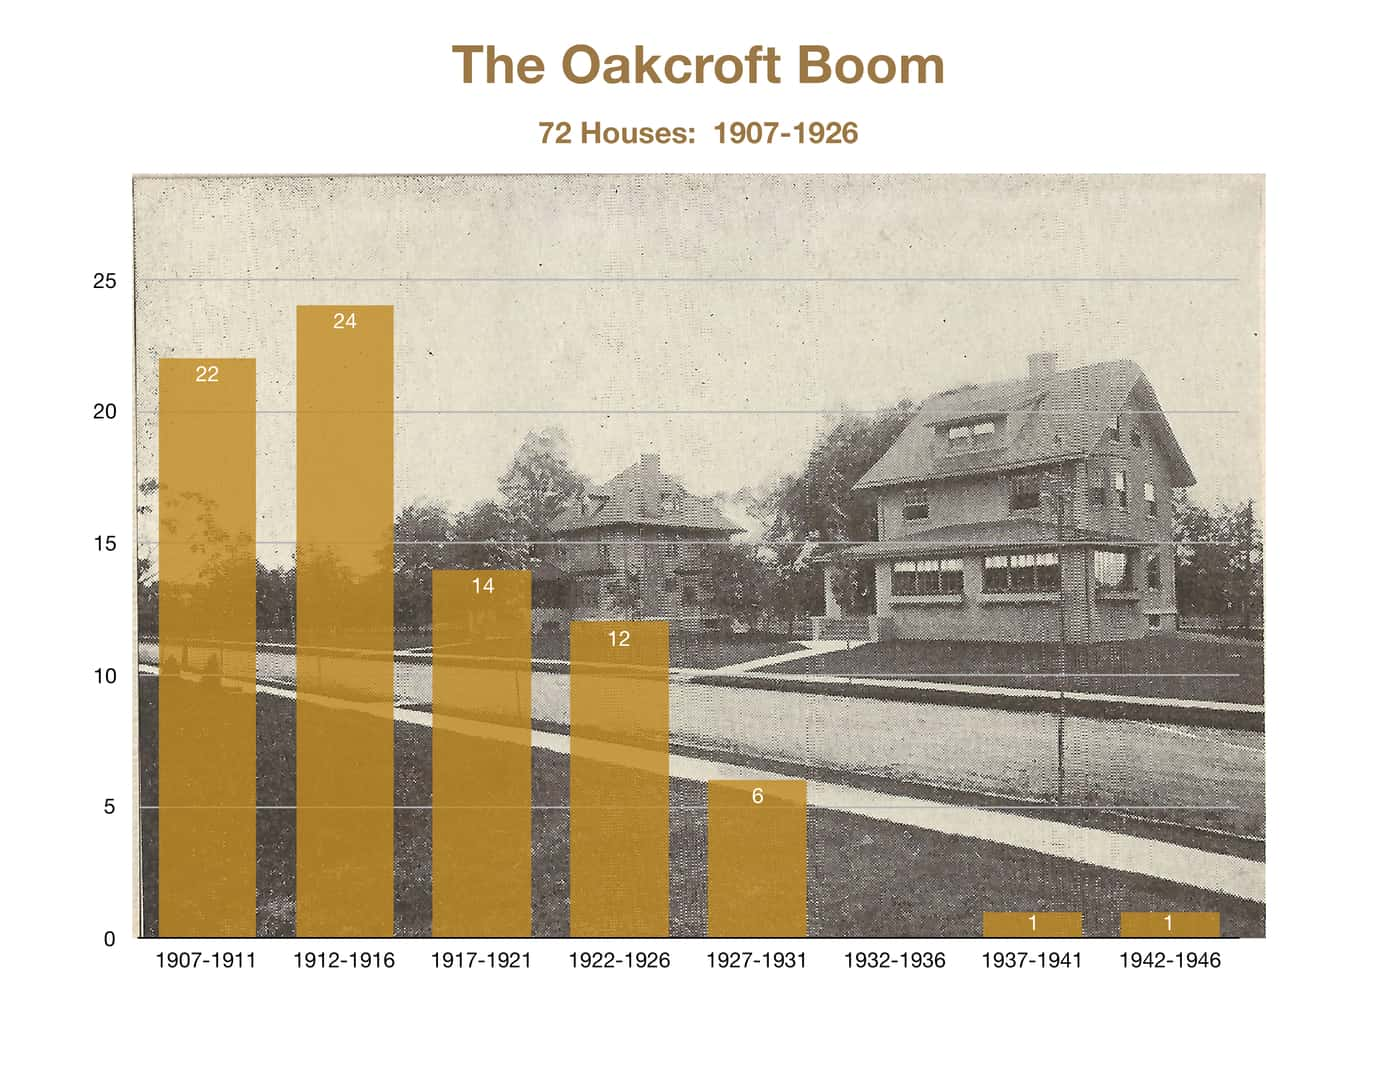 Graph showing the number of Oakcroft houses built during five-year increments between 1907 and 1946